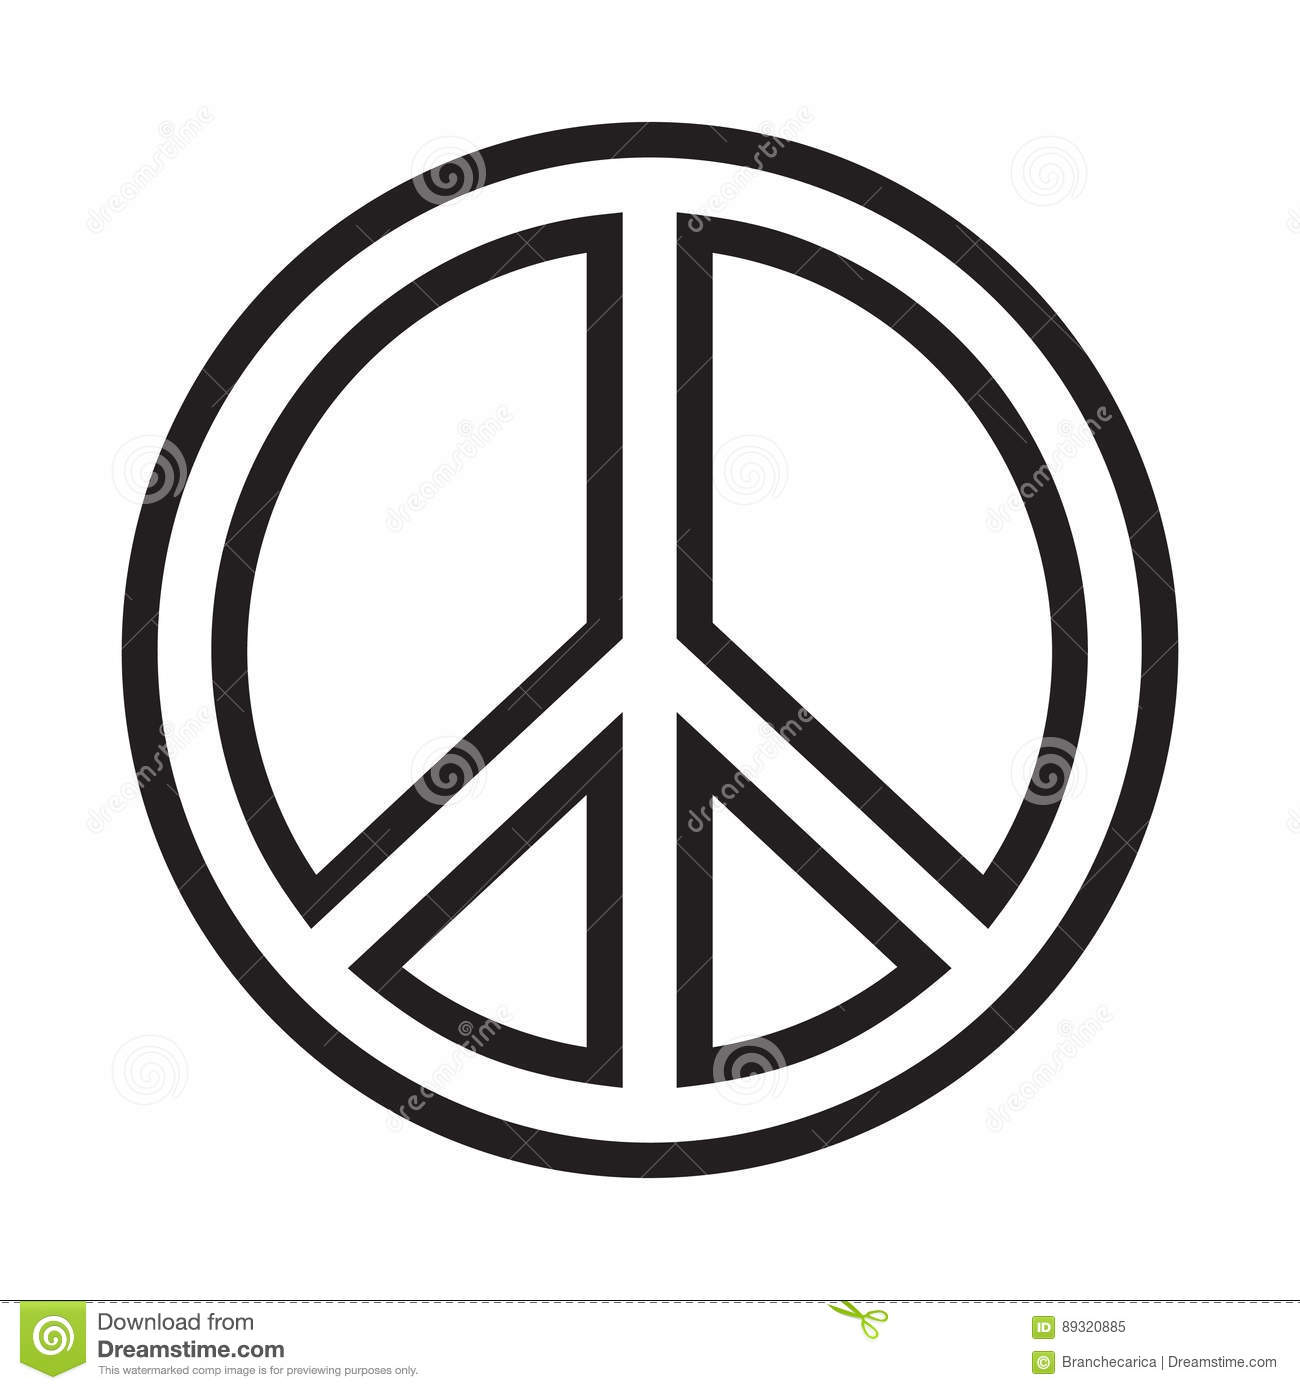 Peace Sign Stock Vector Illustration Of Outline Design